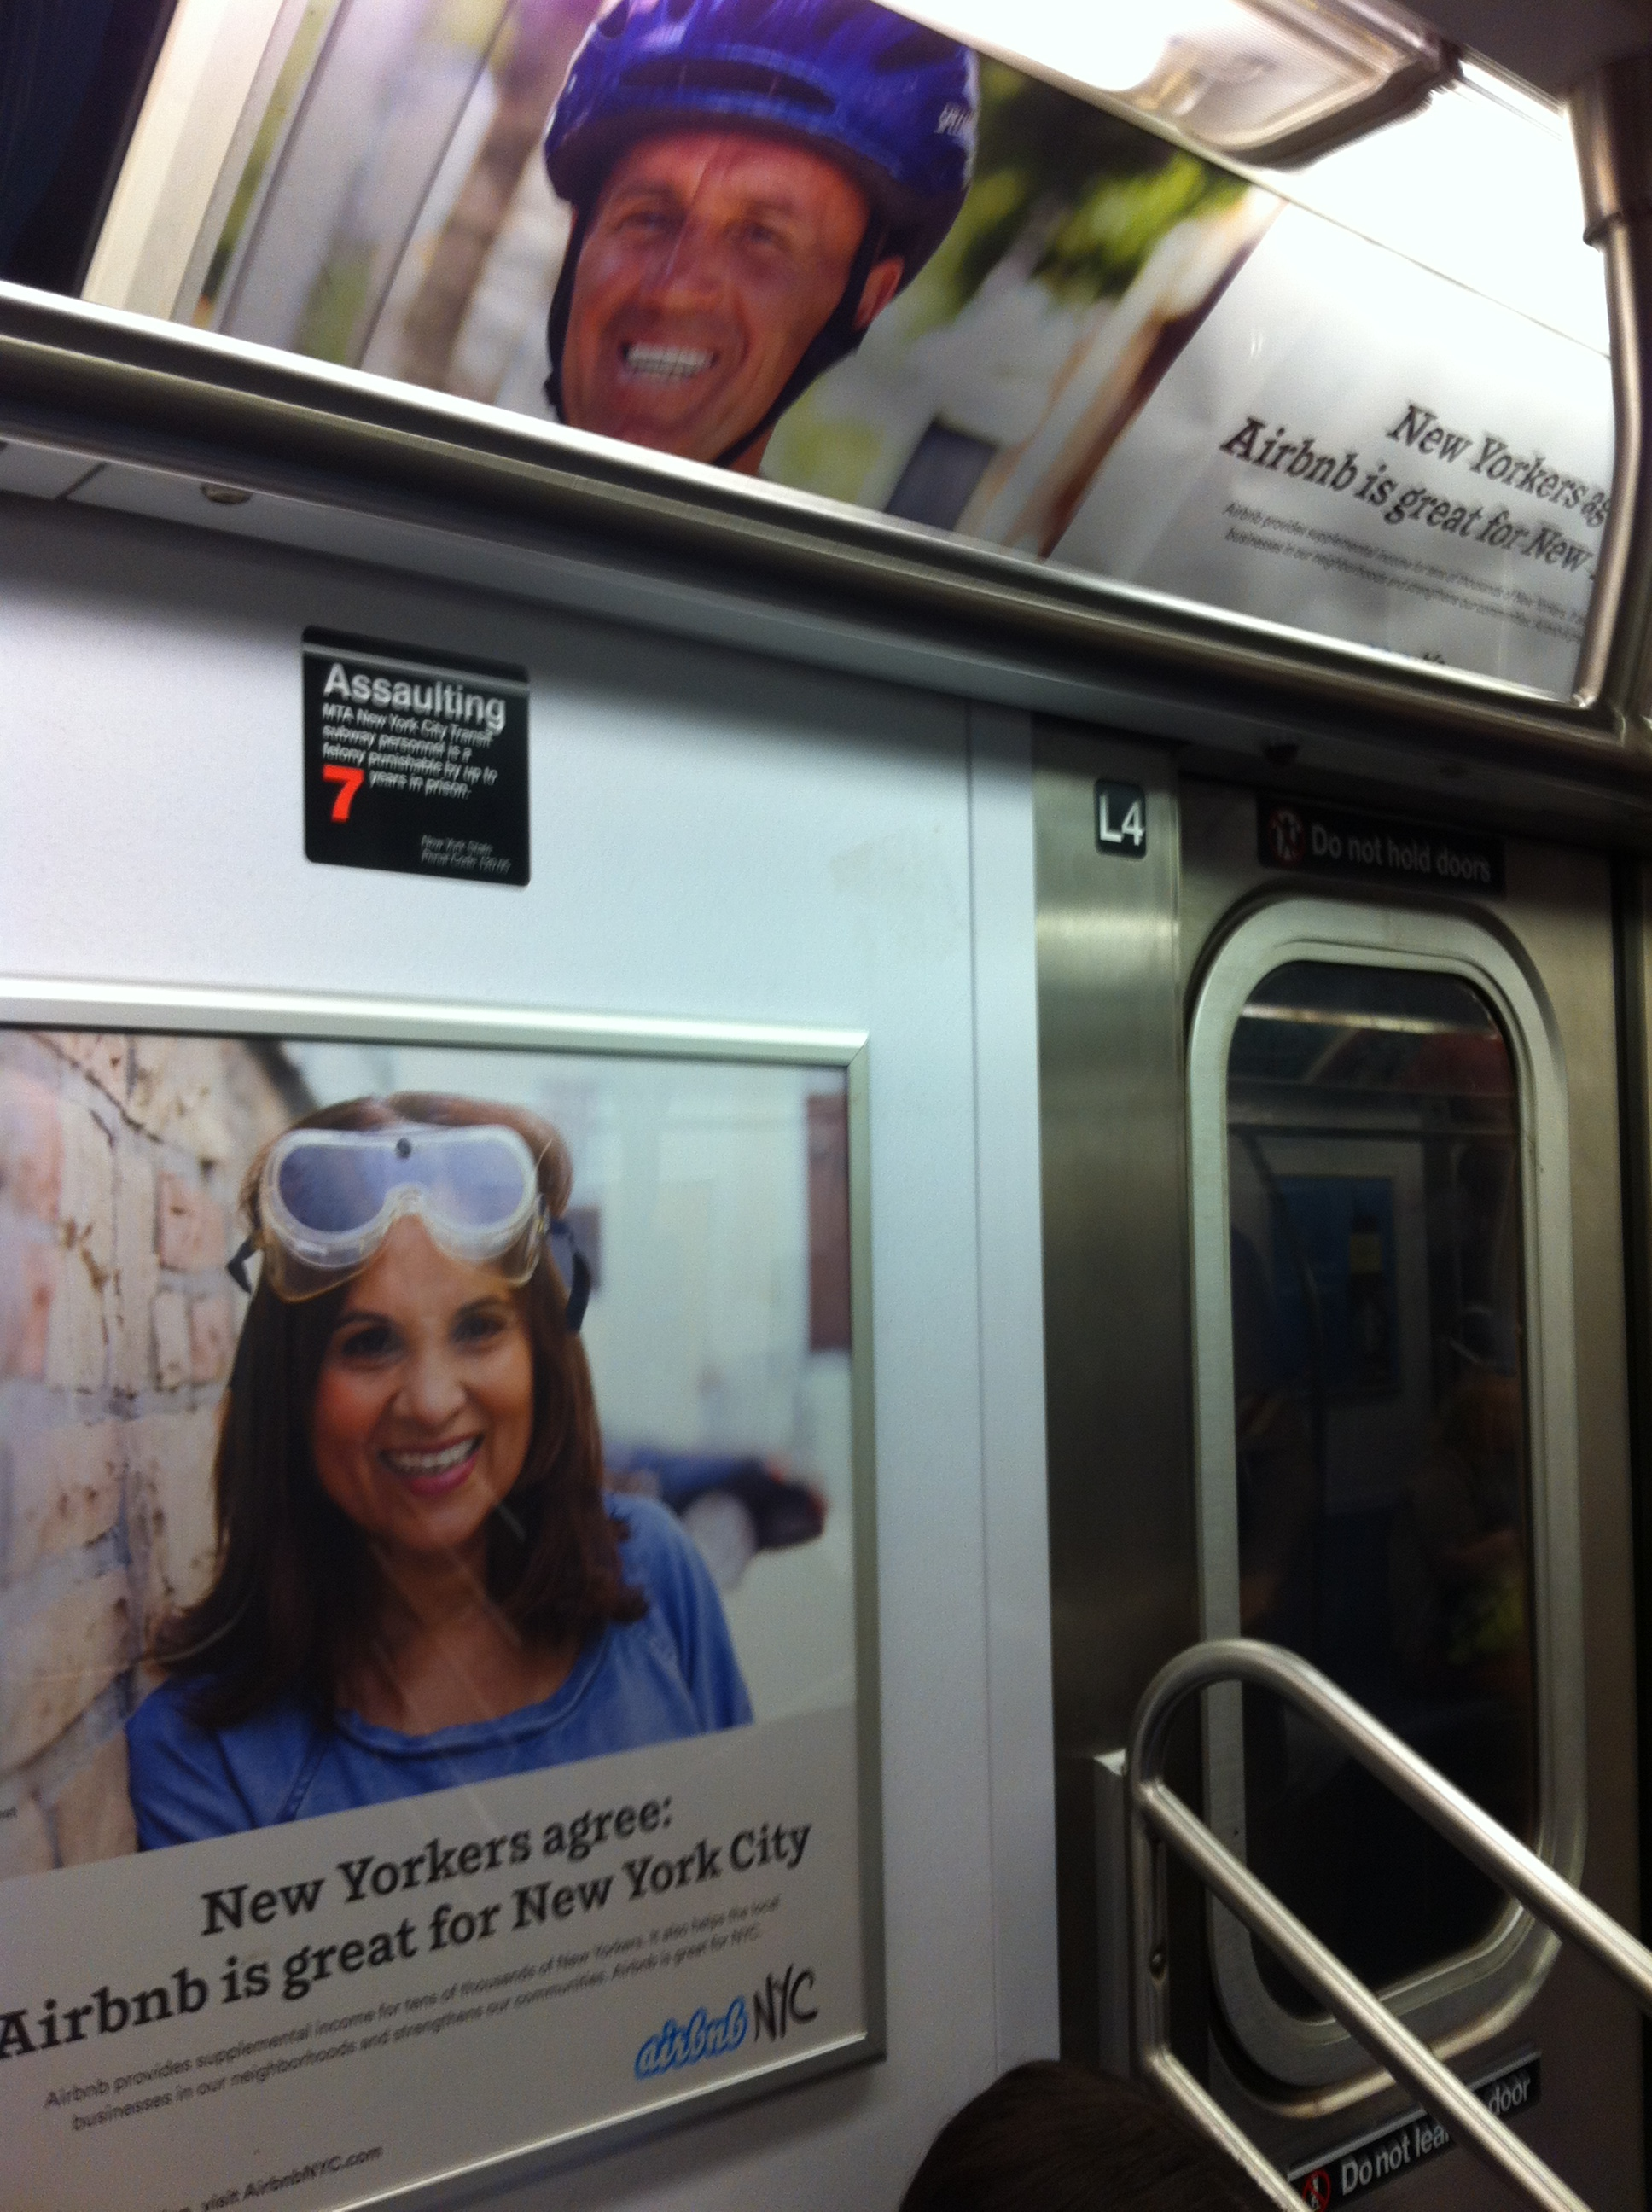 Airbnb subway ad